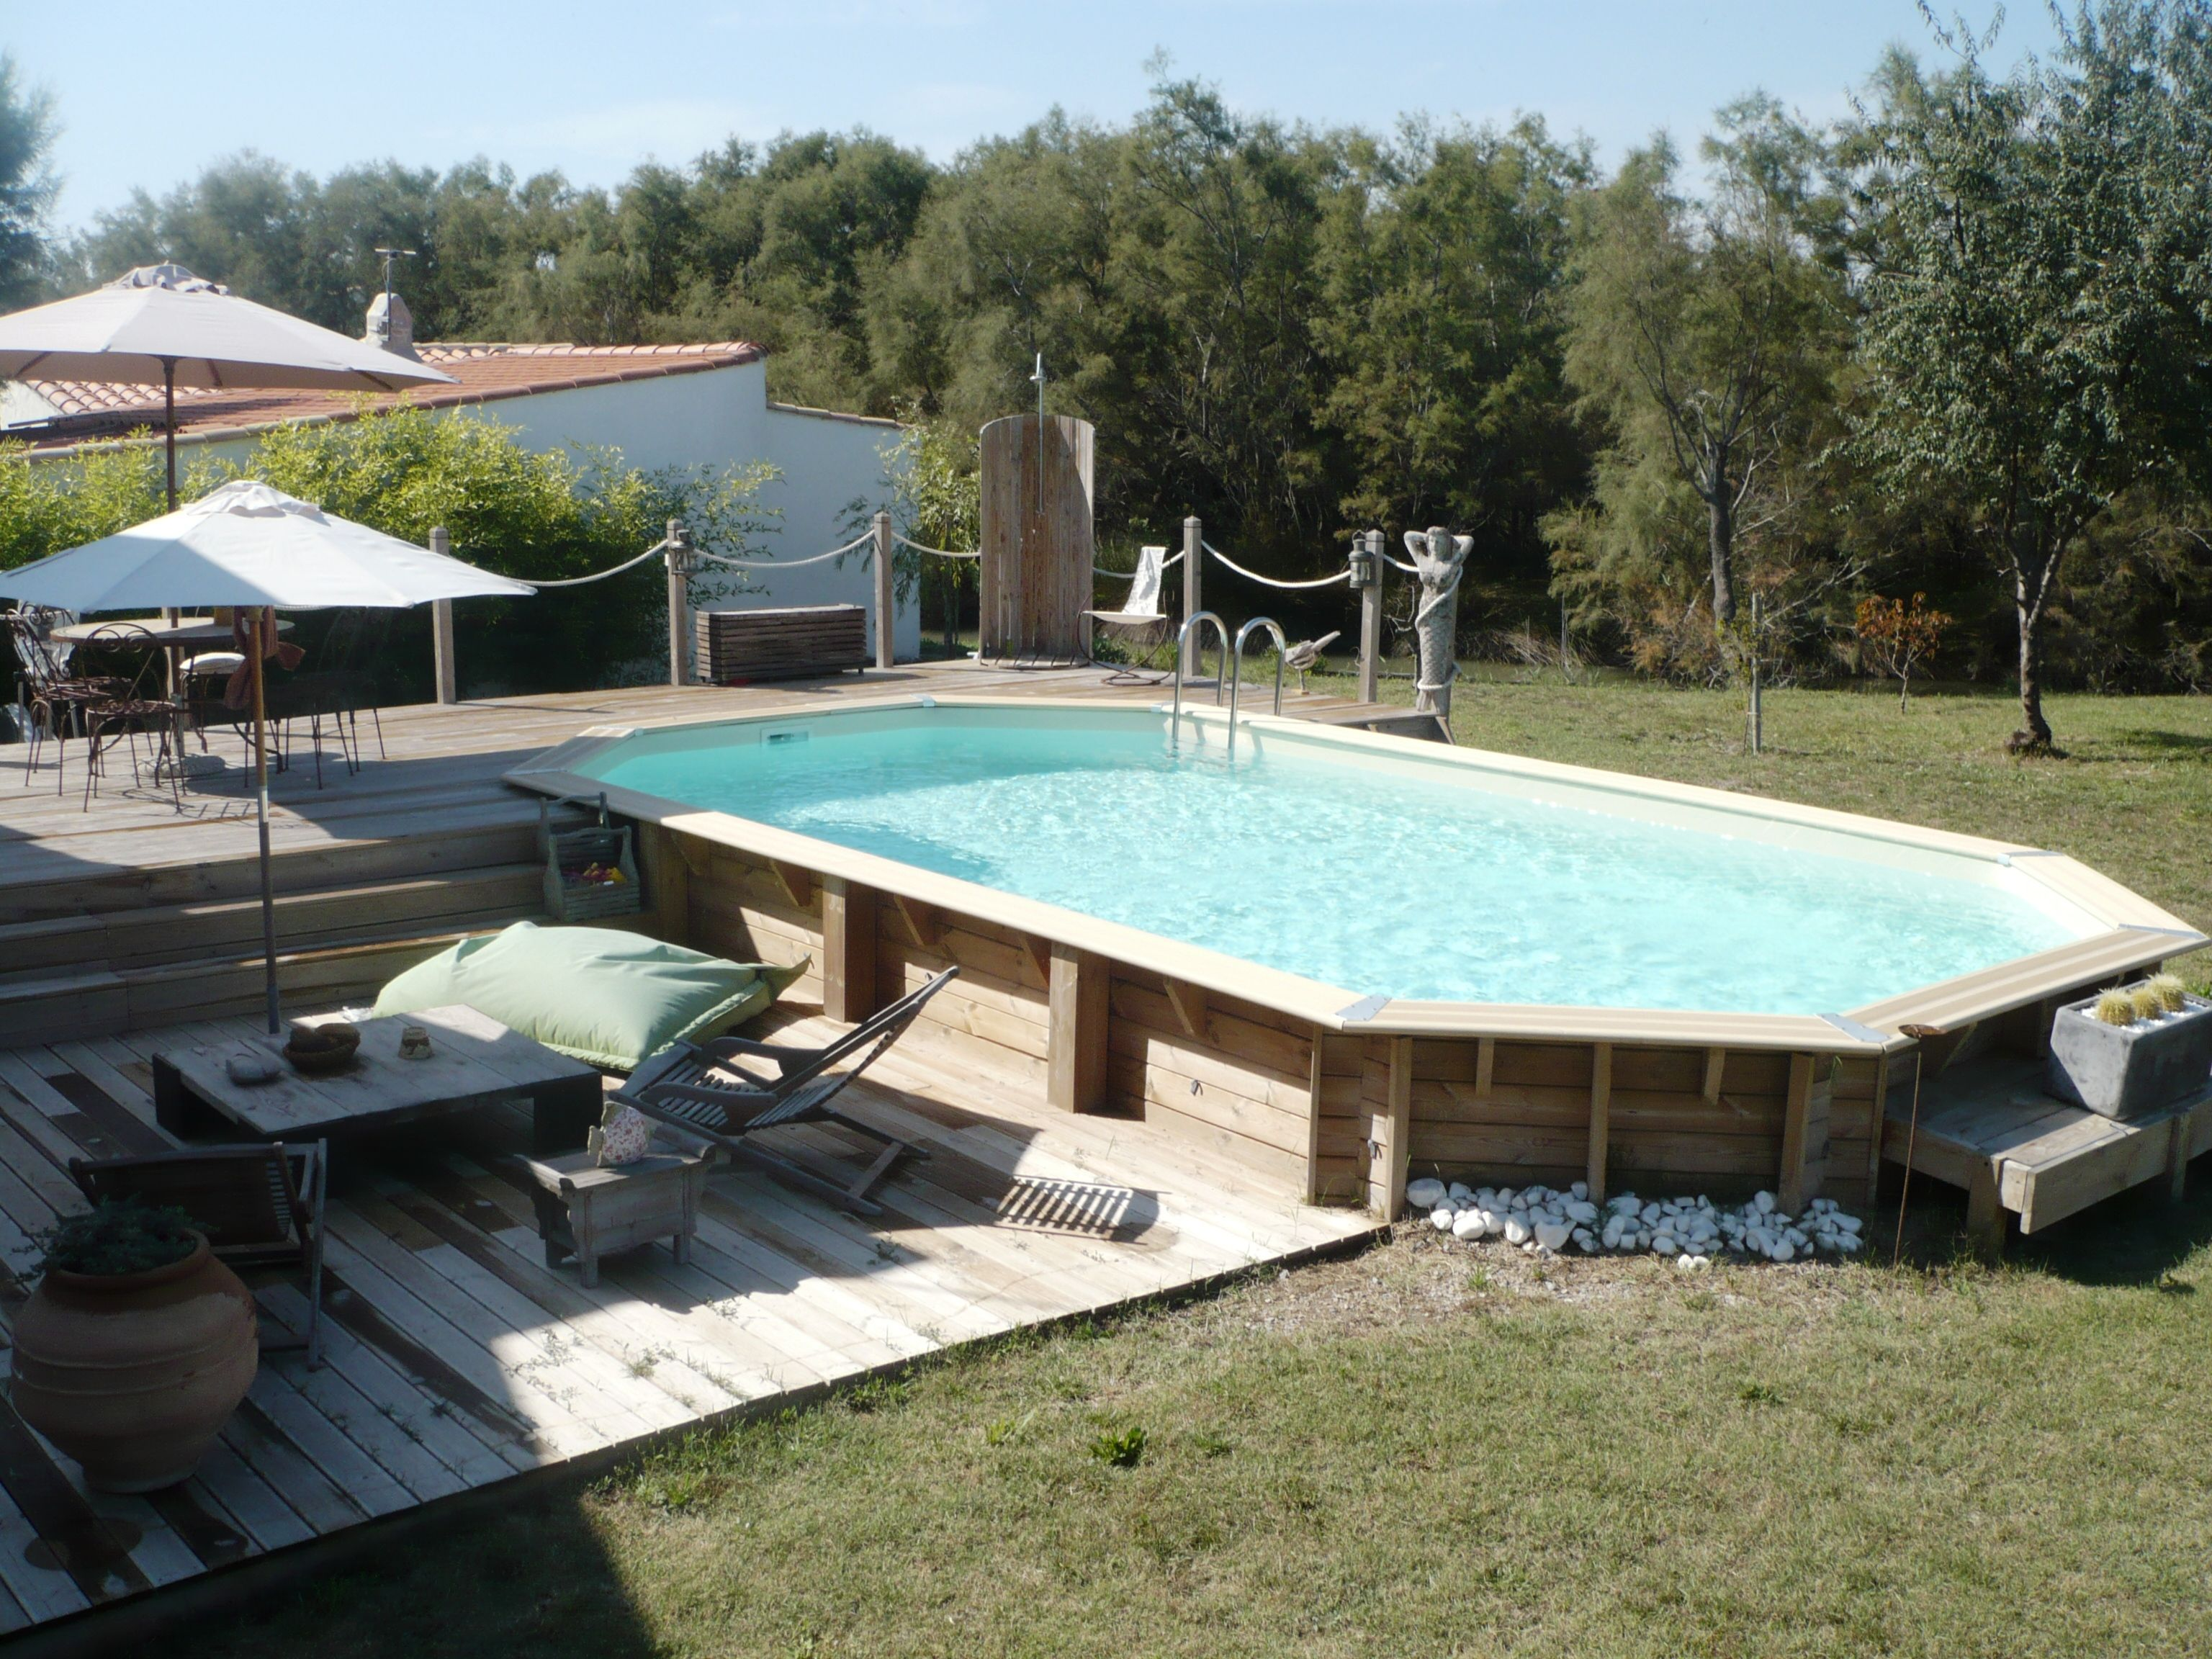 piscine hors sol en bois semi enterr e avec sa terrasse et ses jeux de niveaux projects to try. Black Bedroom Furniture Sets. Home Design Ideas